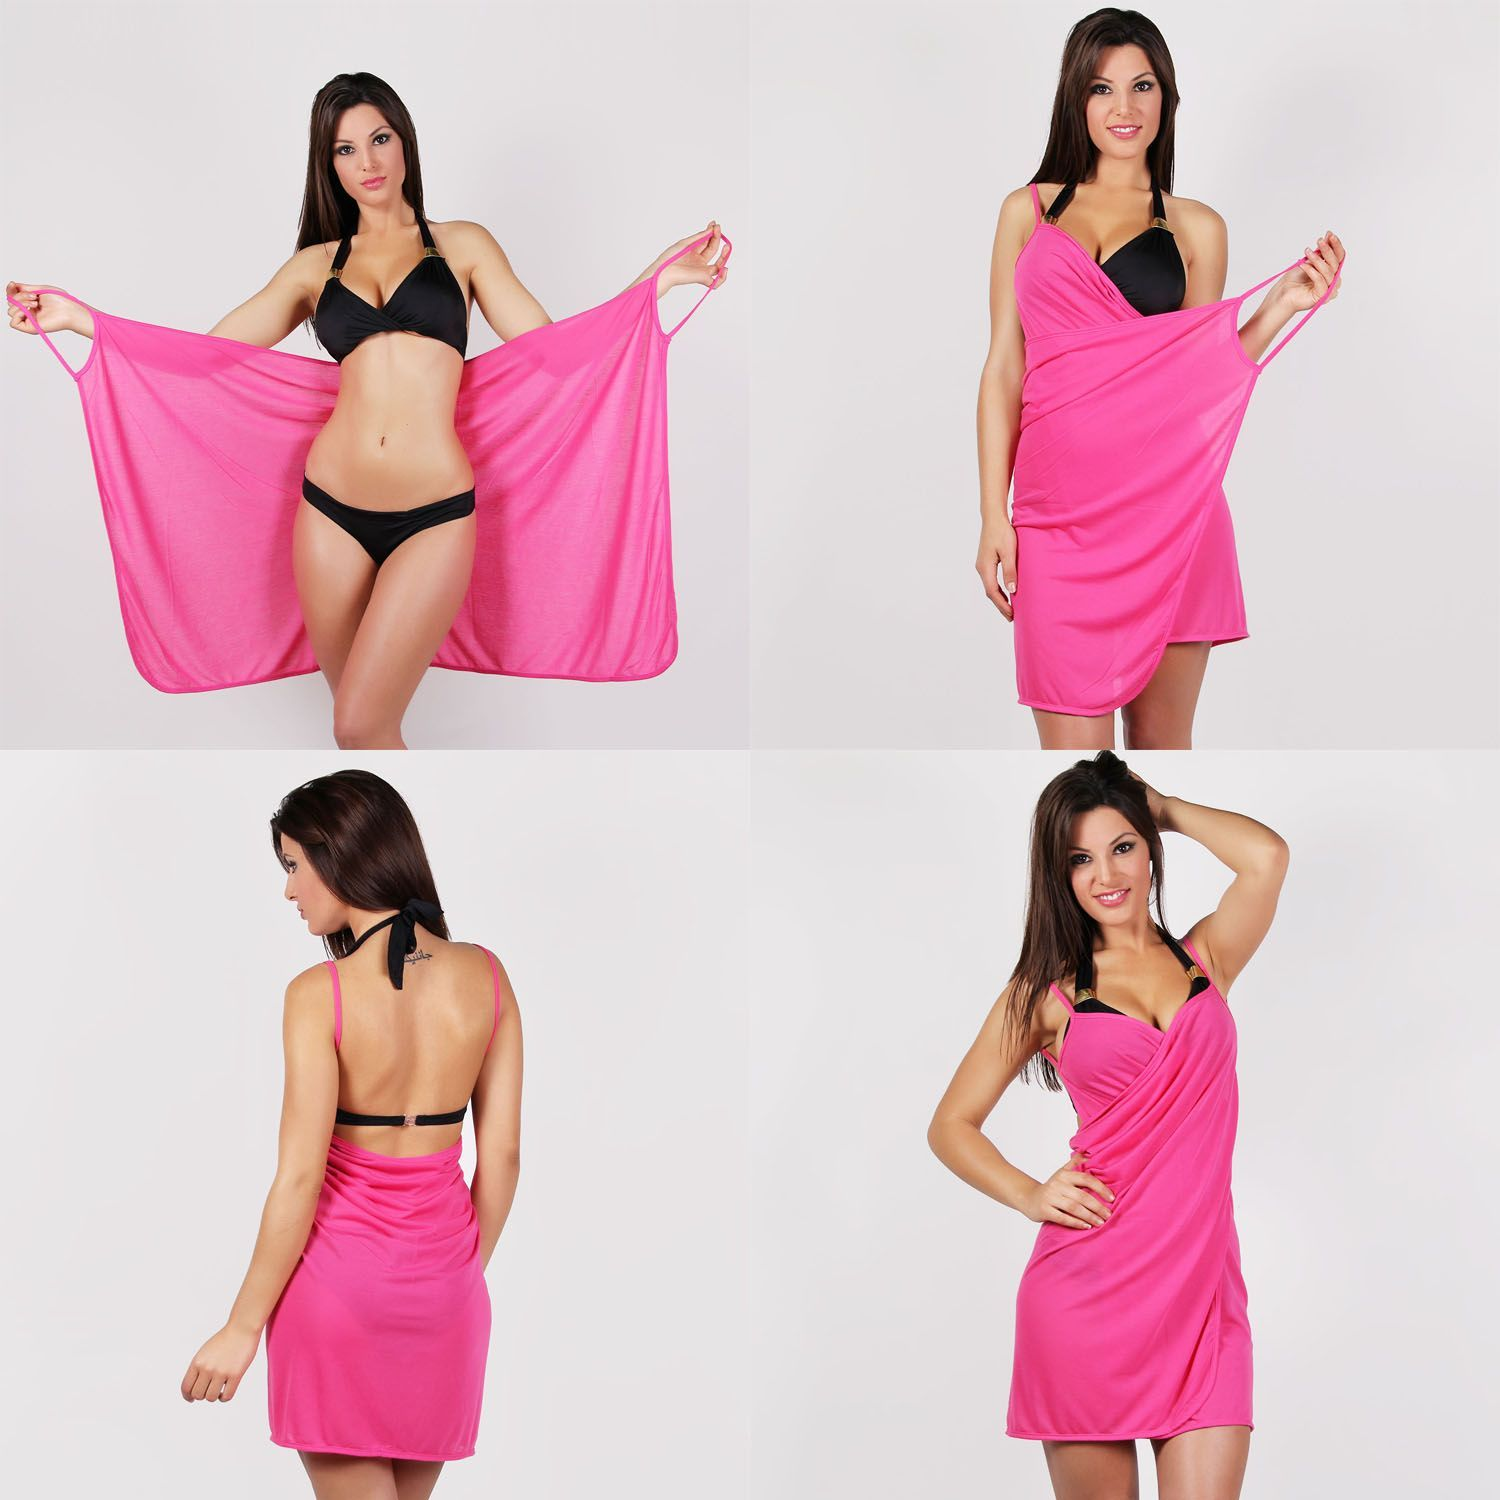 Vestido pareo playero en color rosa | Rosa | Pinterest | Vestido ...